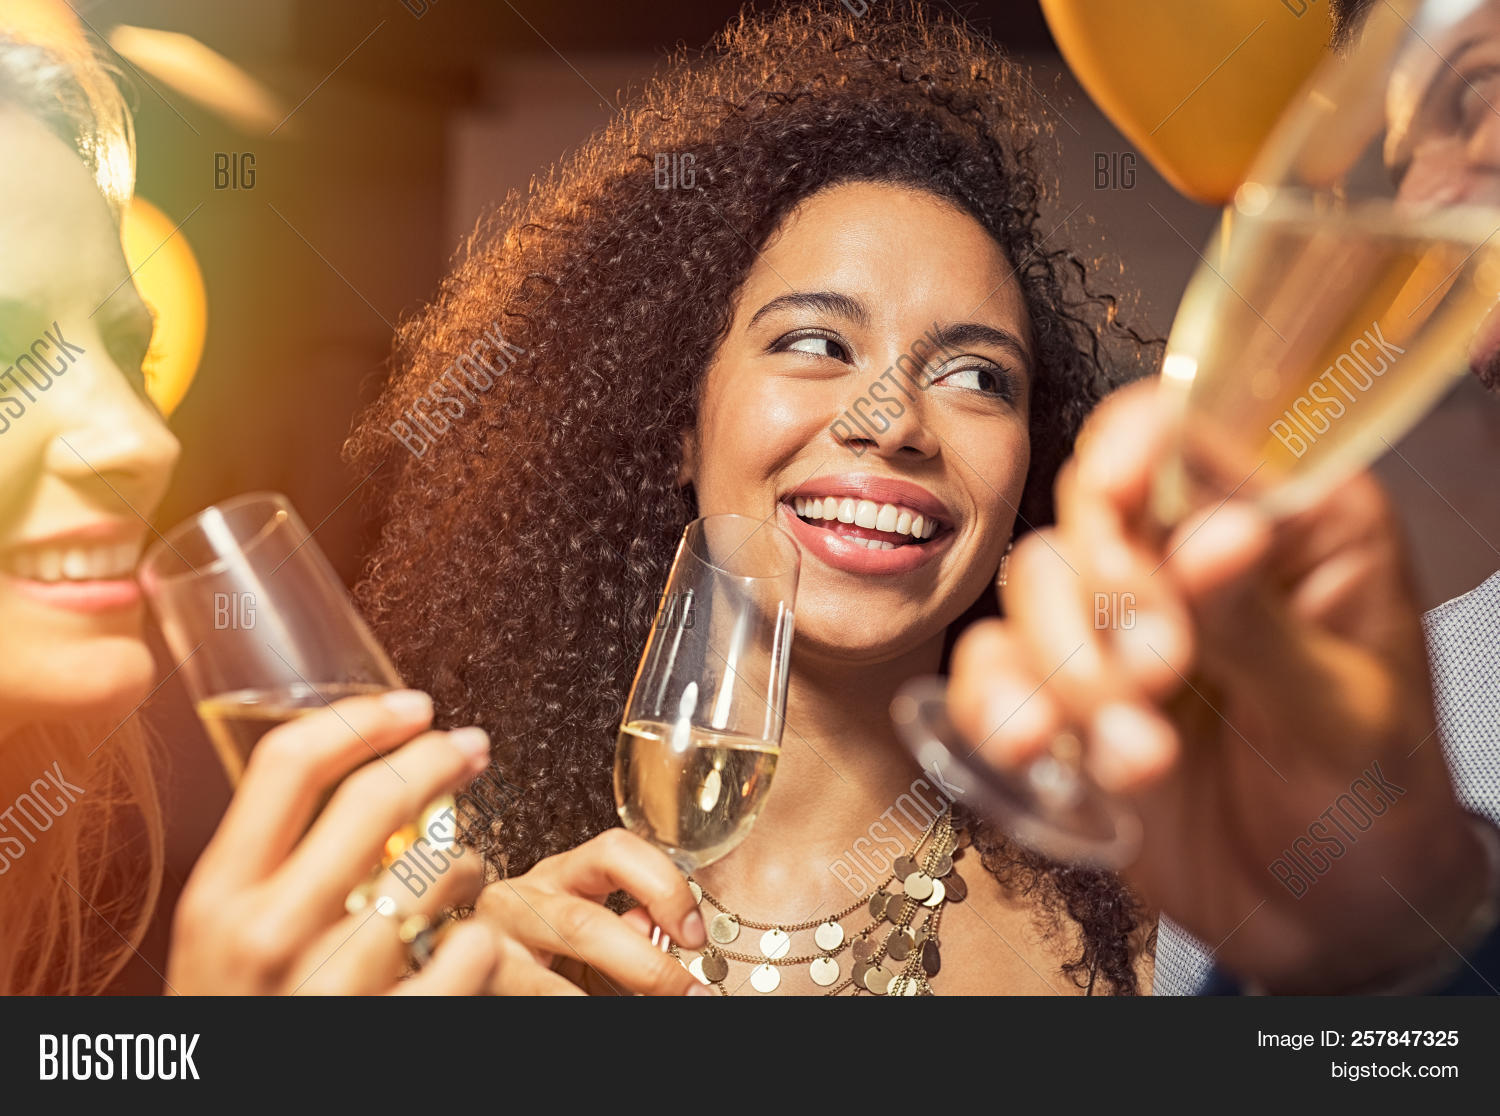 african,alcohol,american,attractive,beautiful,beverage,black,carefree,celebrate,celebrating,celebration,champagne,cheerful,club,drink,drinking champagne,eve,face,flute,friend,friends,fun,girl,glamour,glass,group,happy,happy birthday,joy,laughing,lifestyle,luxury,multi ethnic group,multiethnic,new year,new year eve,new year's eve,new year's party,night,nightlife,party,people,pretty,smiling,together,wine,woman,women,year,young